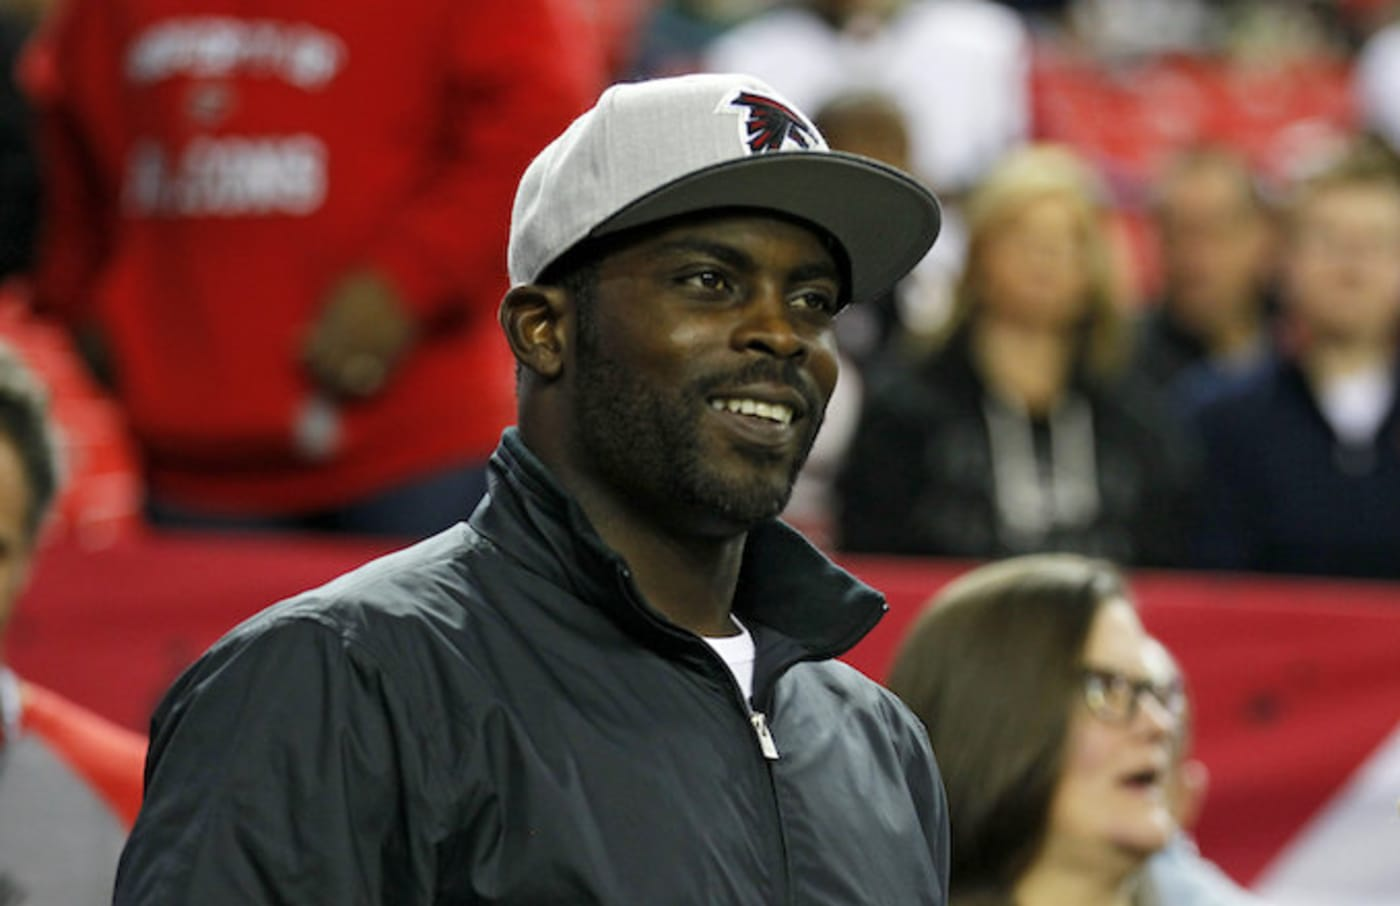 Michael Vick walks onto the sidelines prior to an NFL football game.